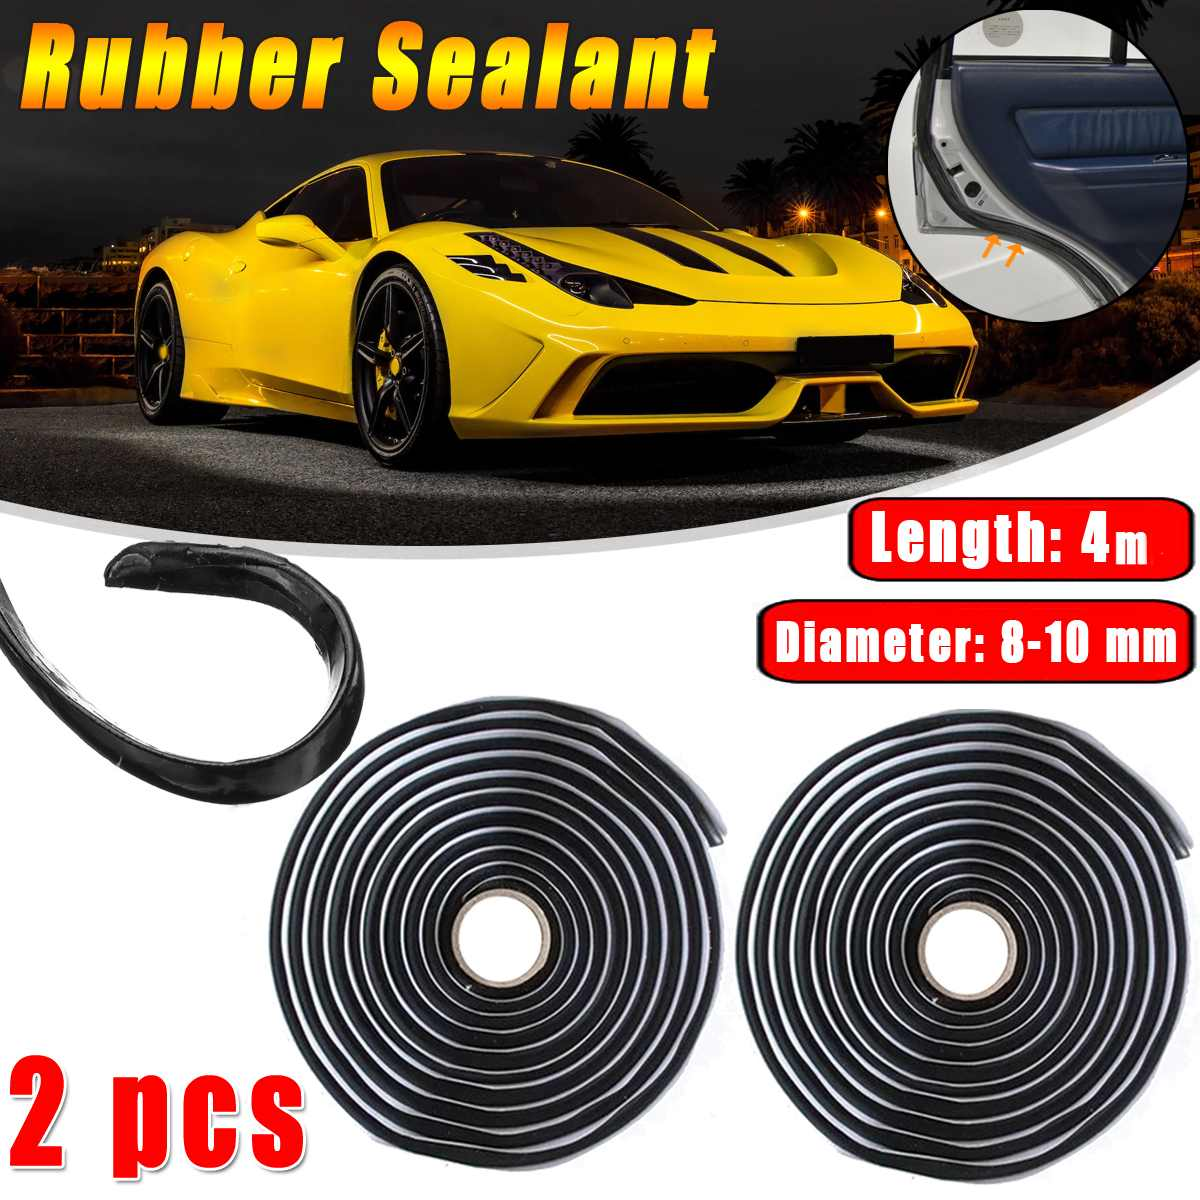 2pcs Car Rubber Sealant 4 Meters Butyl Glue Headlight Windshield Retrofit Reseal Hid Headlamps Taillight Shield Glue Tapes